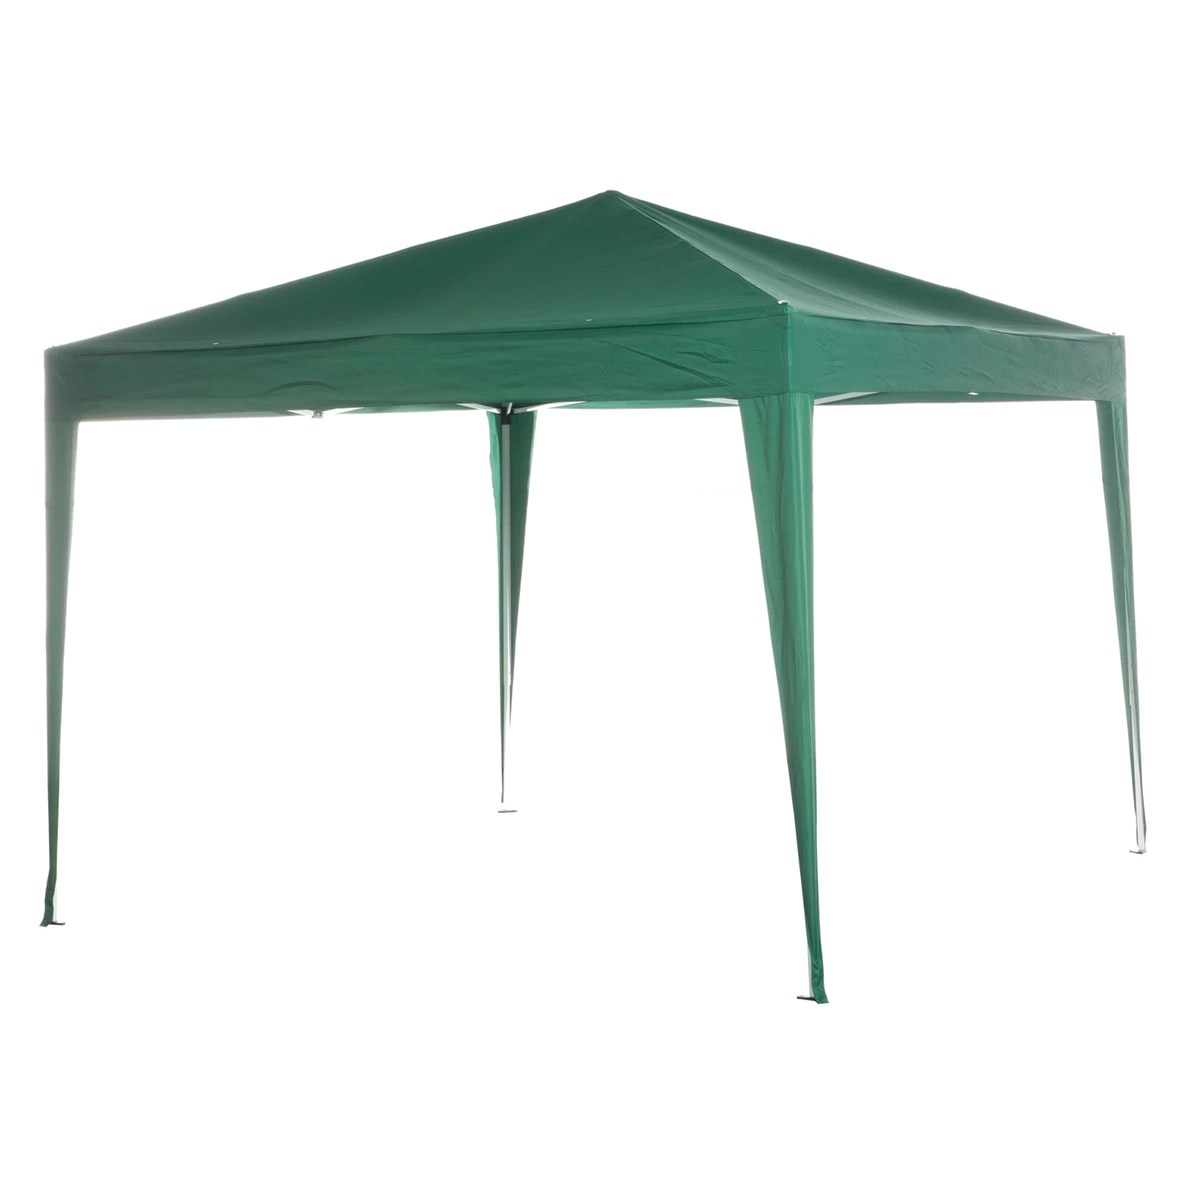 Leroy Merlin Gazebo Giardino Beautiful Pareti Divisorie Leroy Merlin Awesome Tappeto